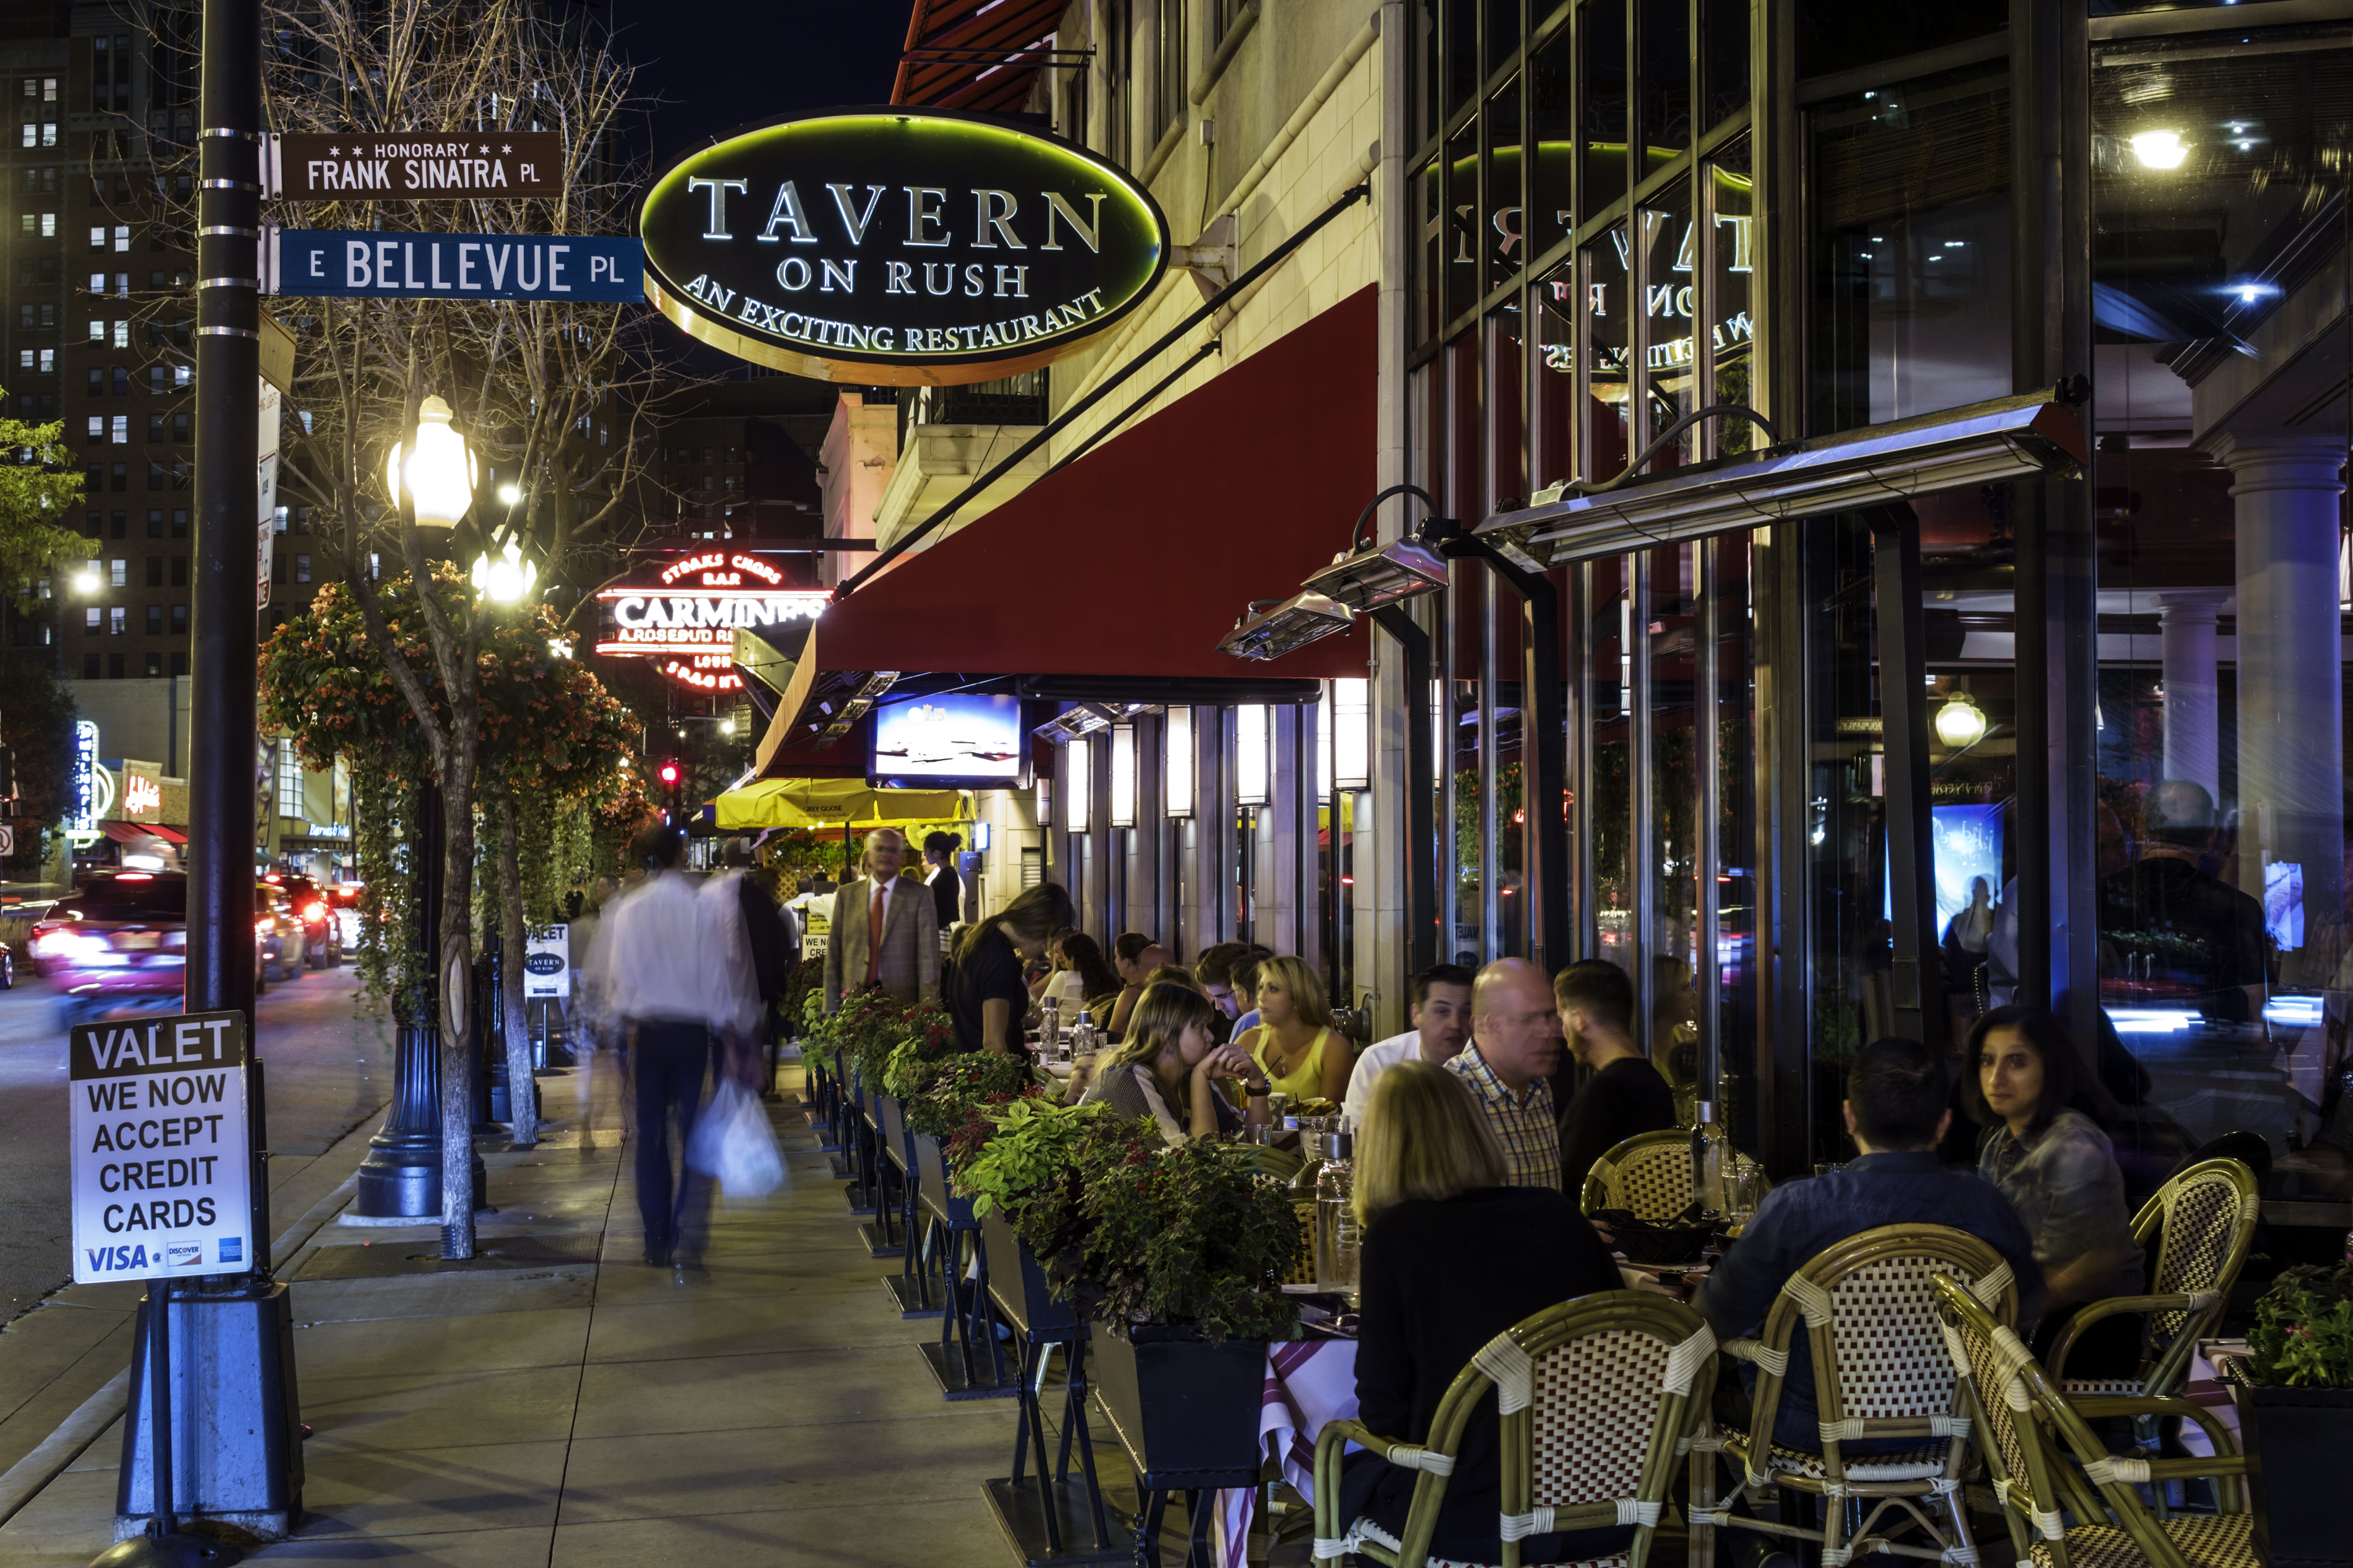 Tavern On Rush restaurant at night in the Gold Coast Historic District.